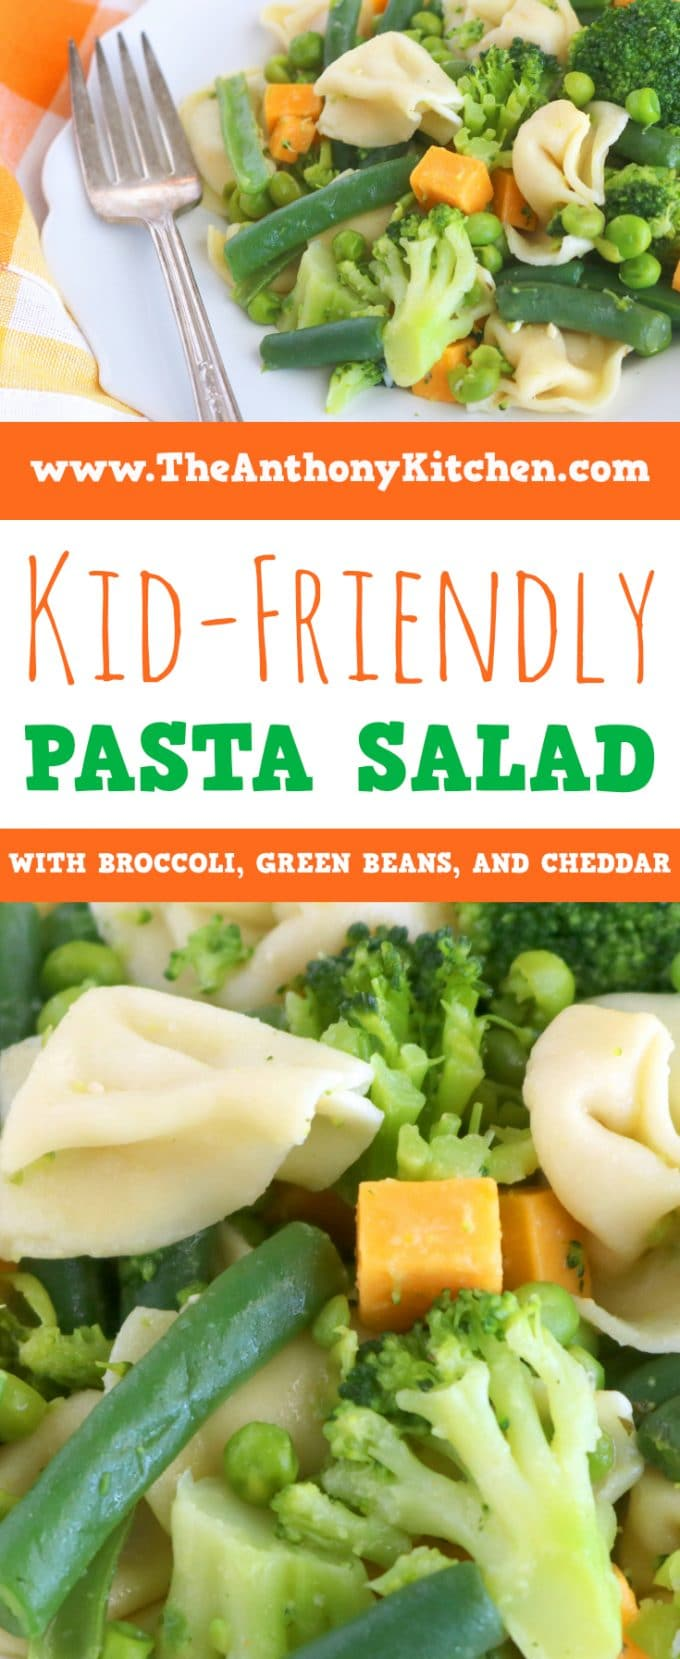 Kid-Friendly Dinner Idea - Pasta Salad with cheese tortellini, broccoli, green beans, peas, and Cheddar Cheese